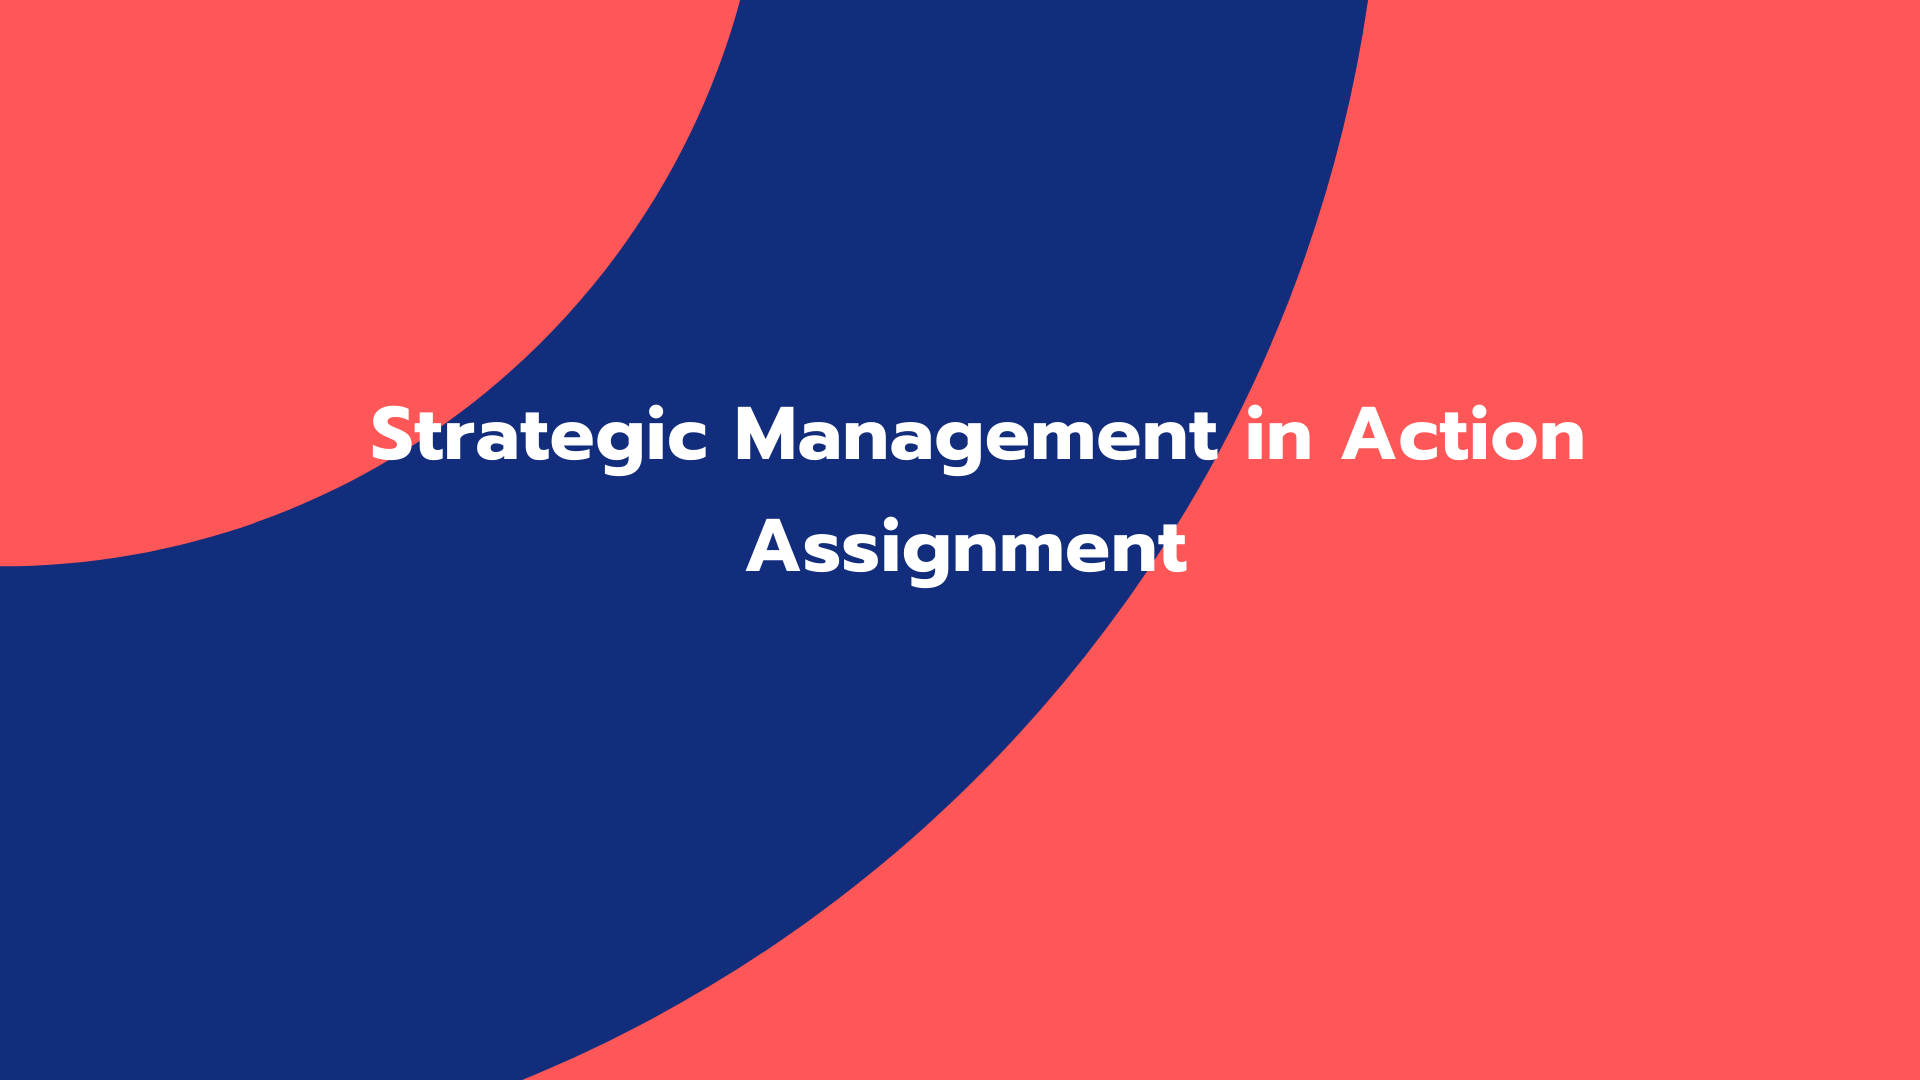 Strategic Management in Action Assignment Sample